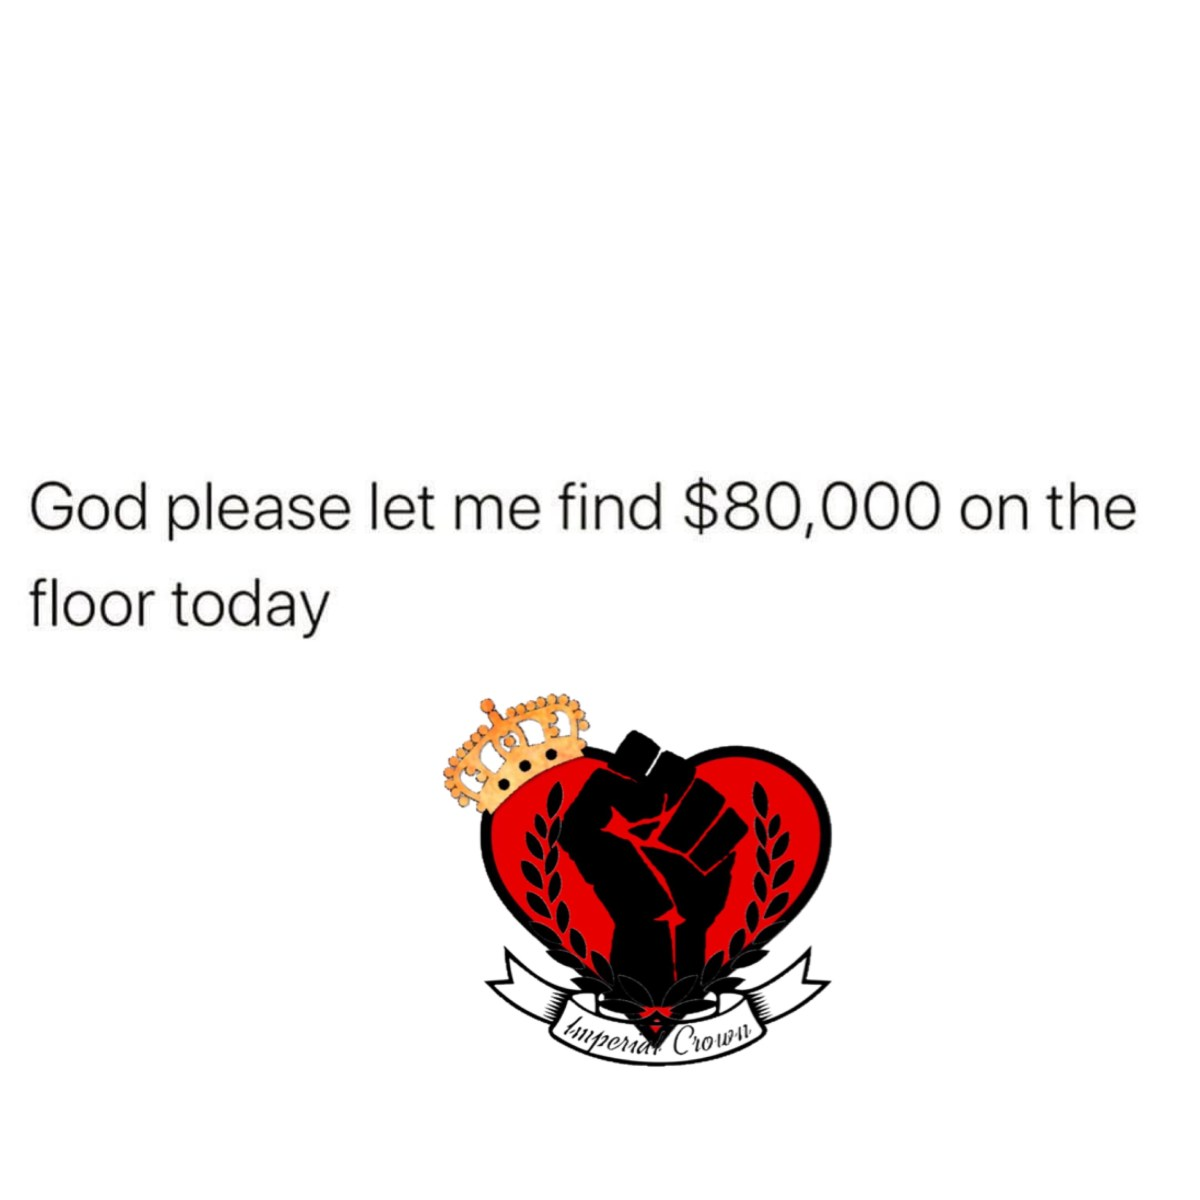 God please let me find $80,000 on the floor today